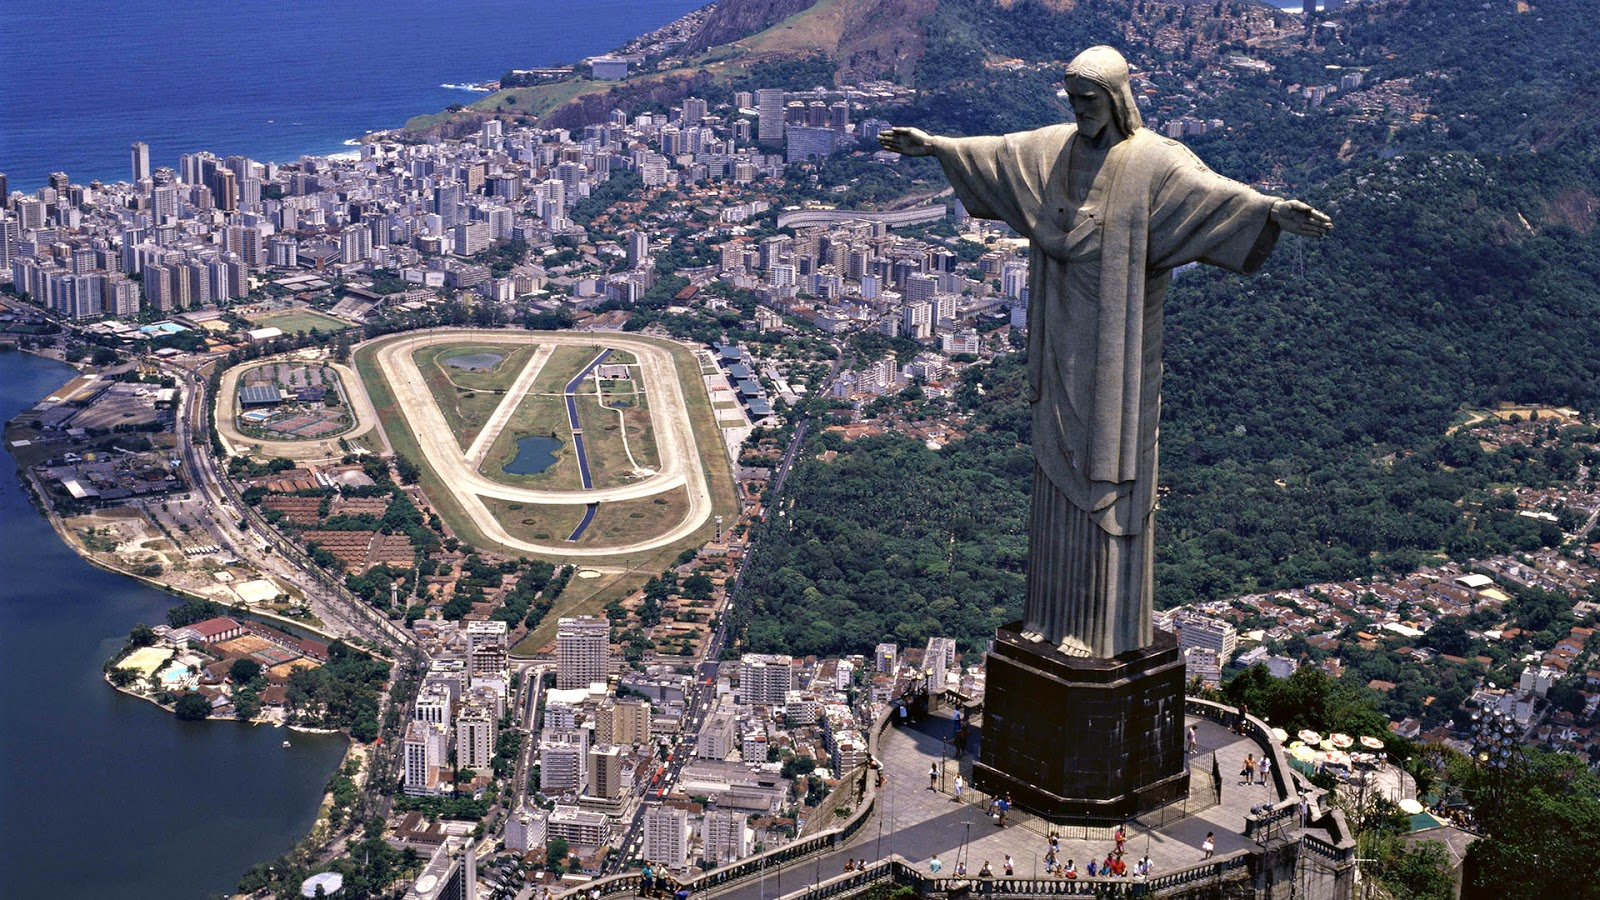 statue of jesus christ the redeemer background hd images